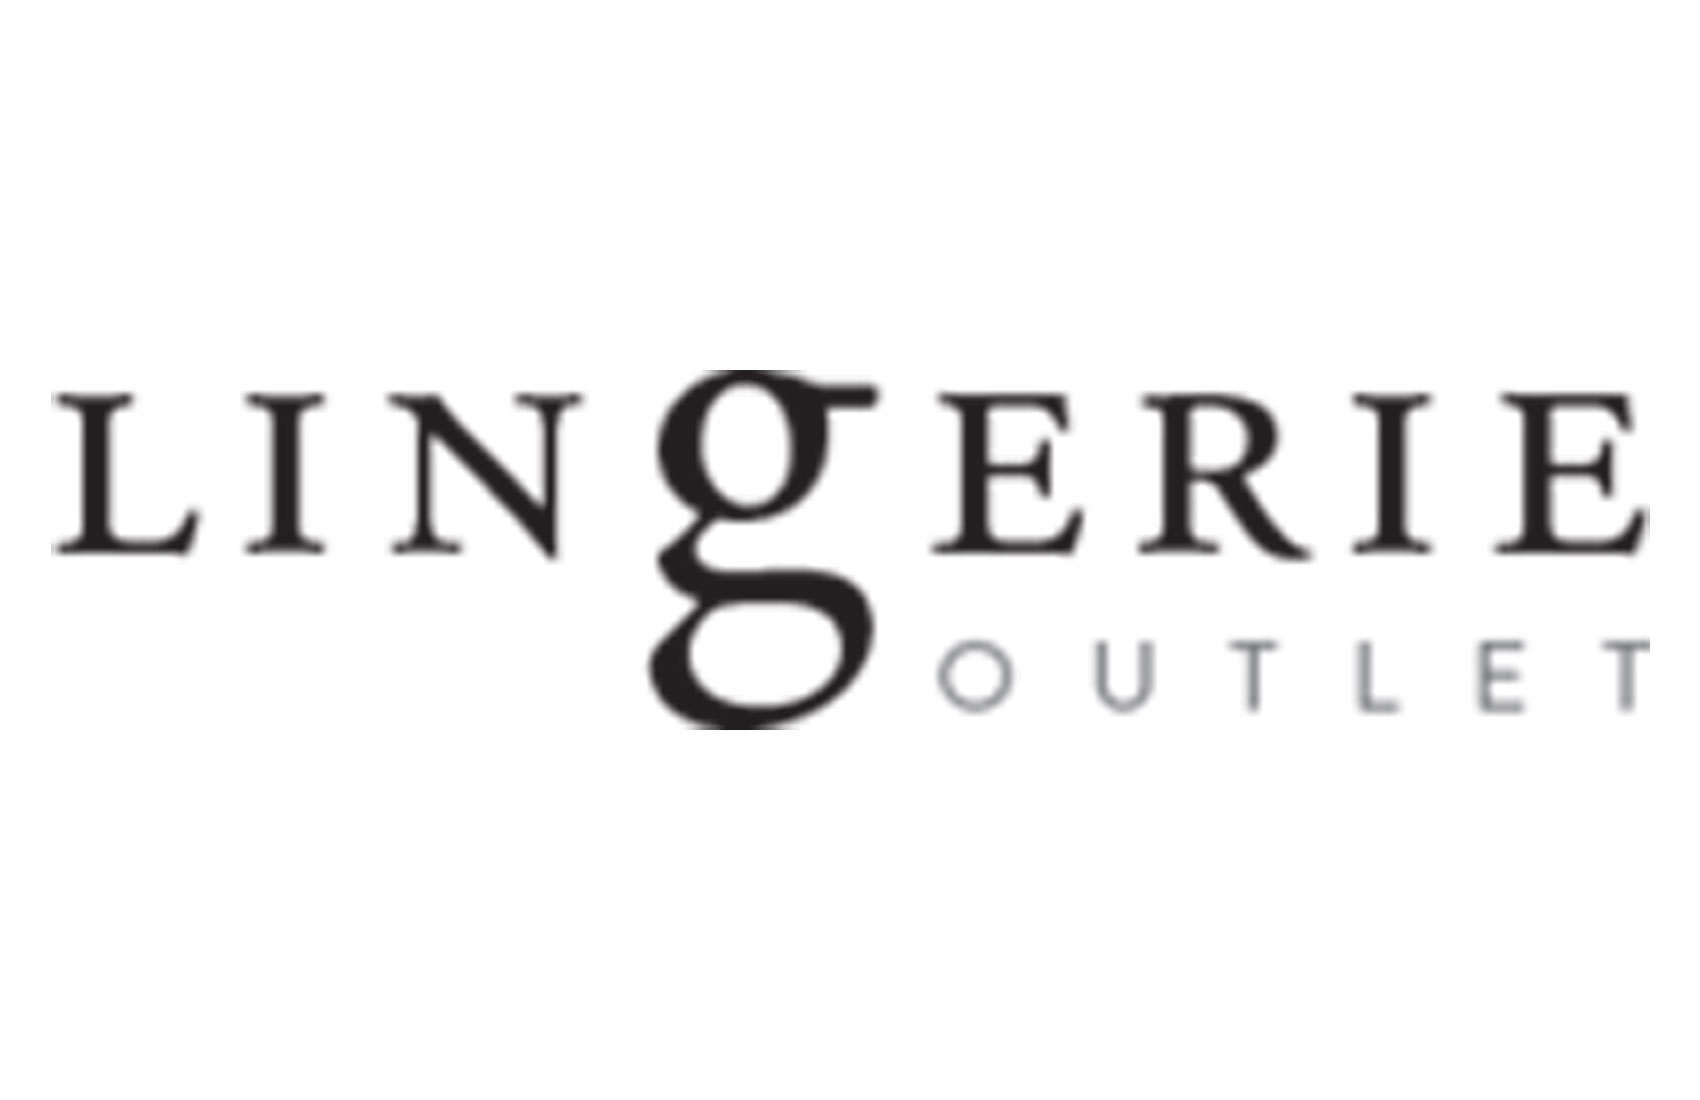 Lingerie Outlet Driespoort Shopping